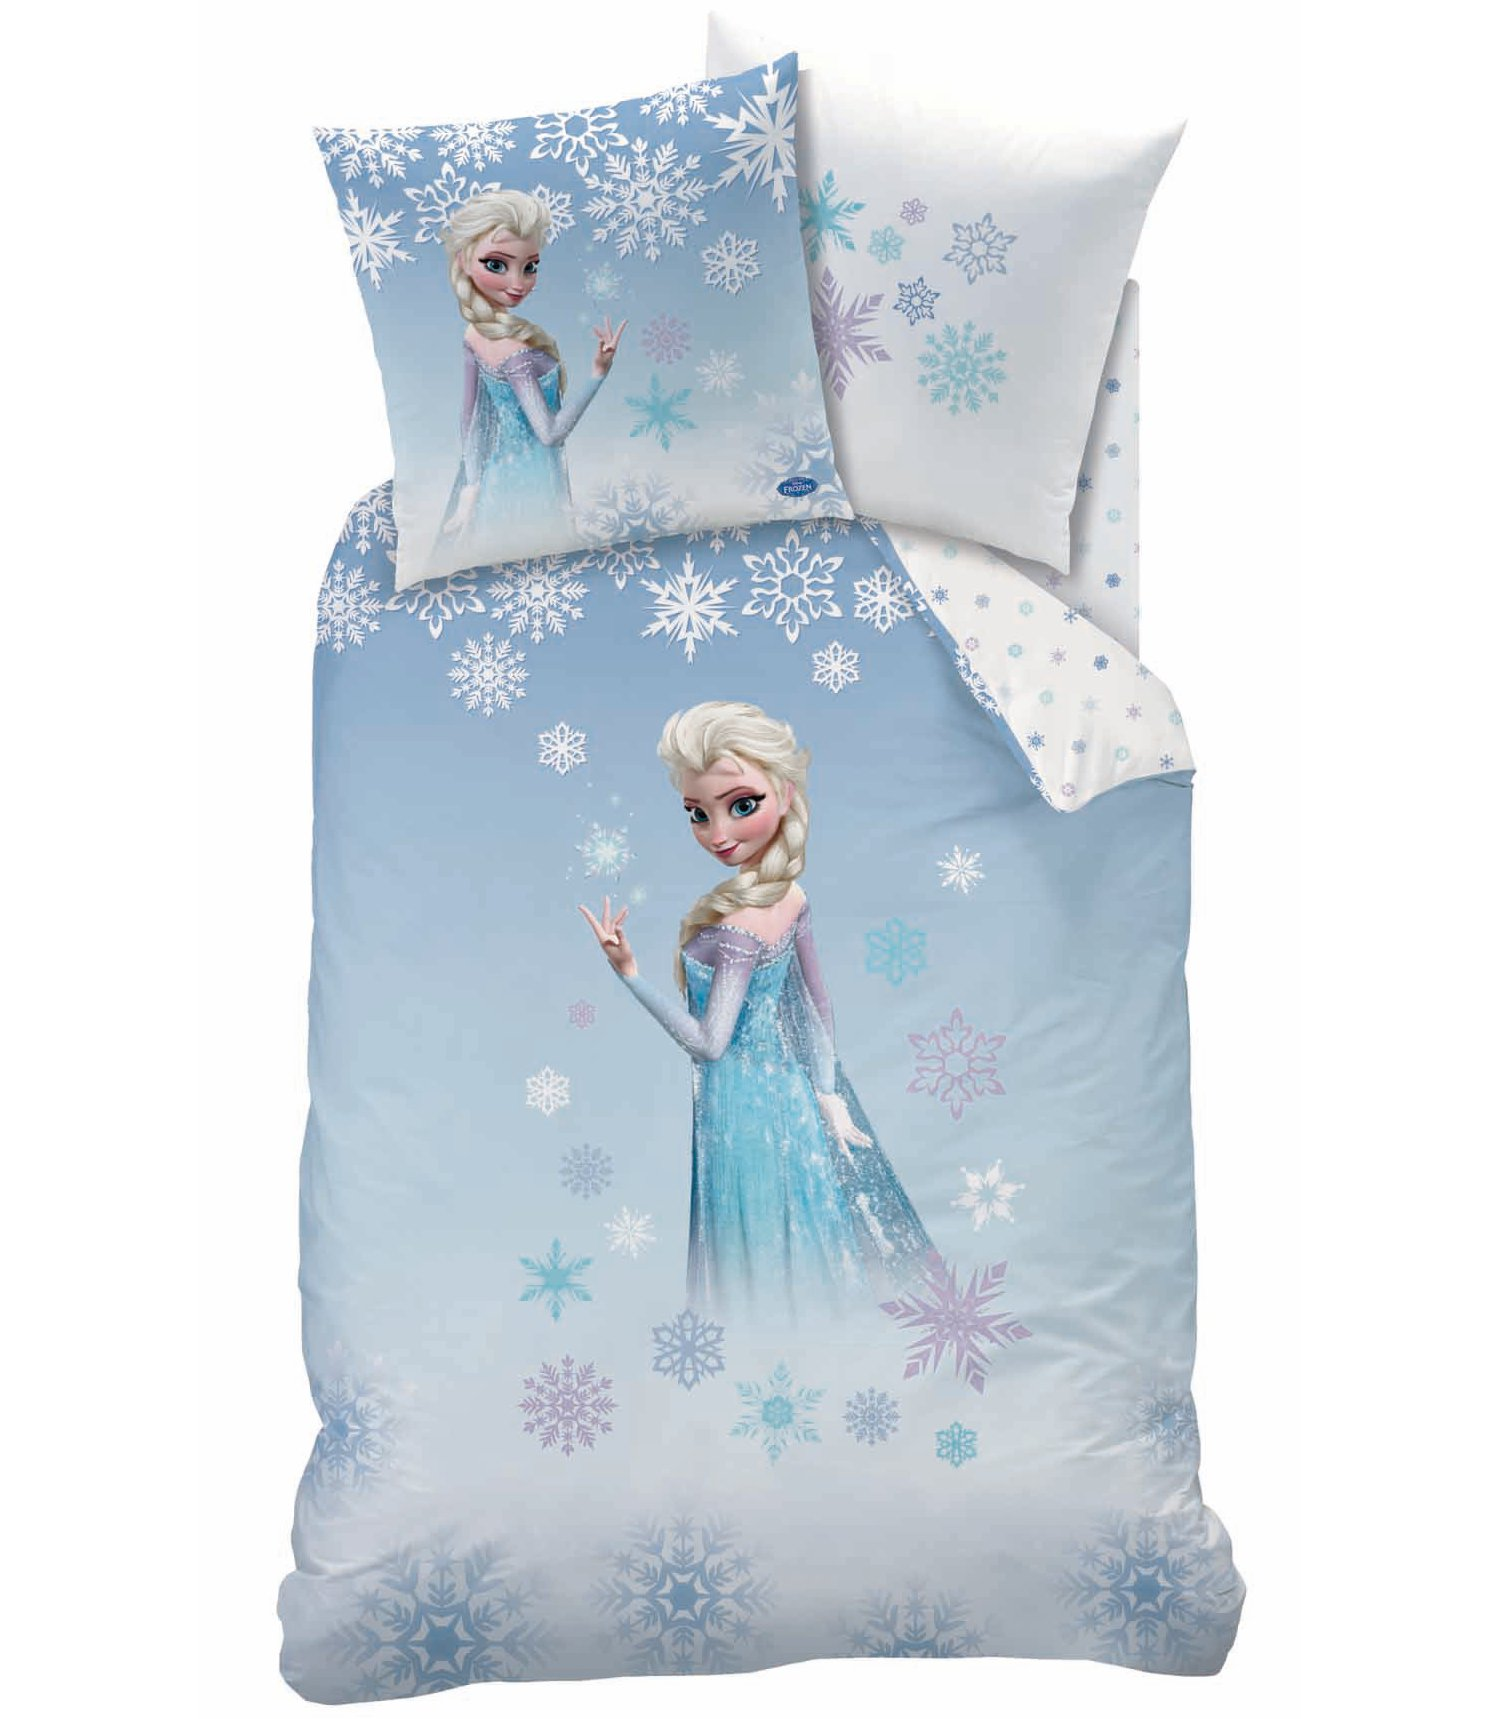 housse de couette disney princesse frozen parure de lit r versible 140 x 200 cm decokids. Black Bedroom Furniture Sets. Home Design Ideas